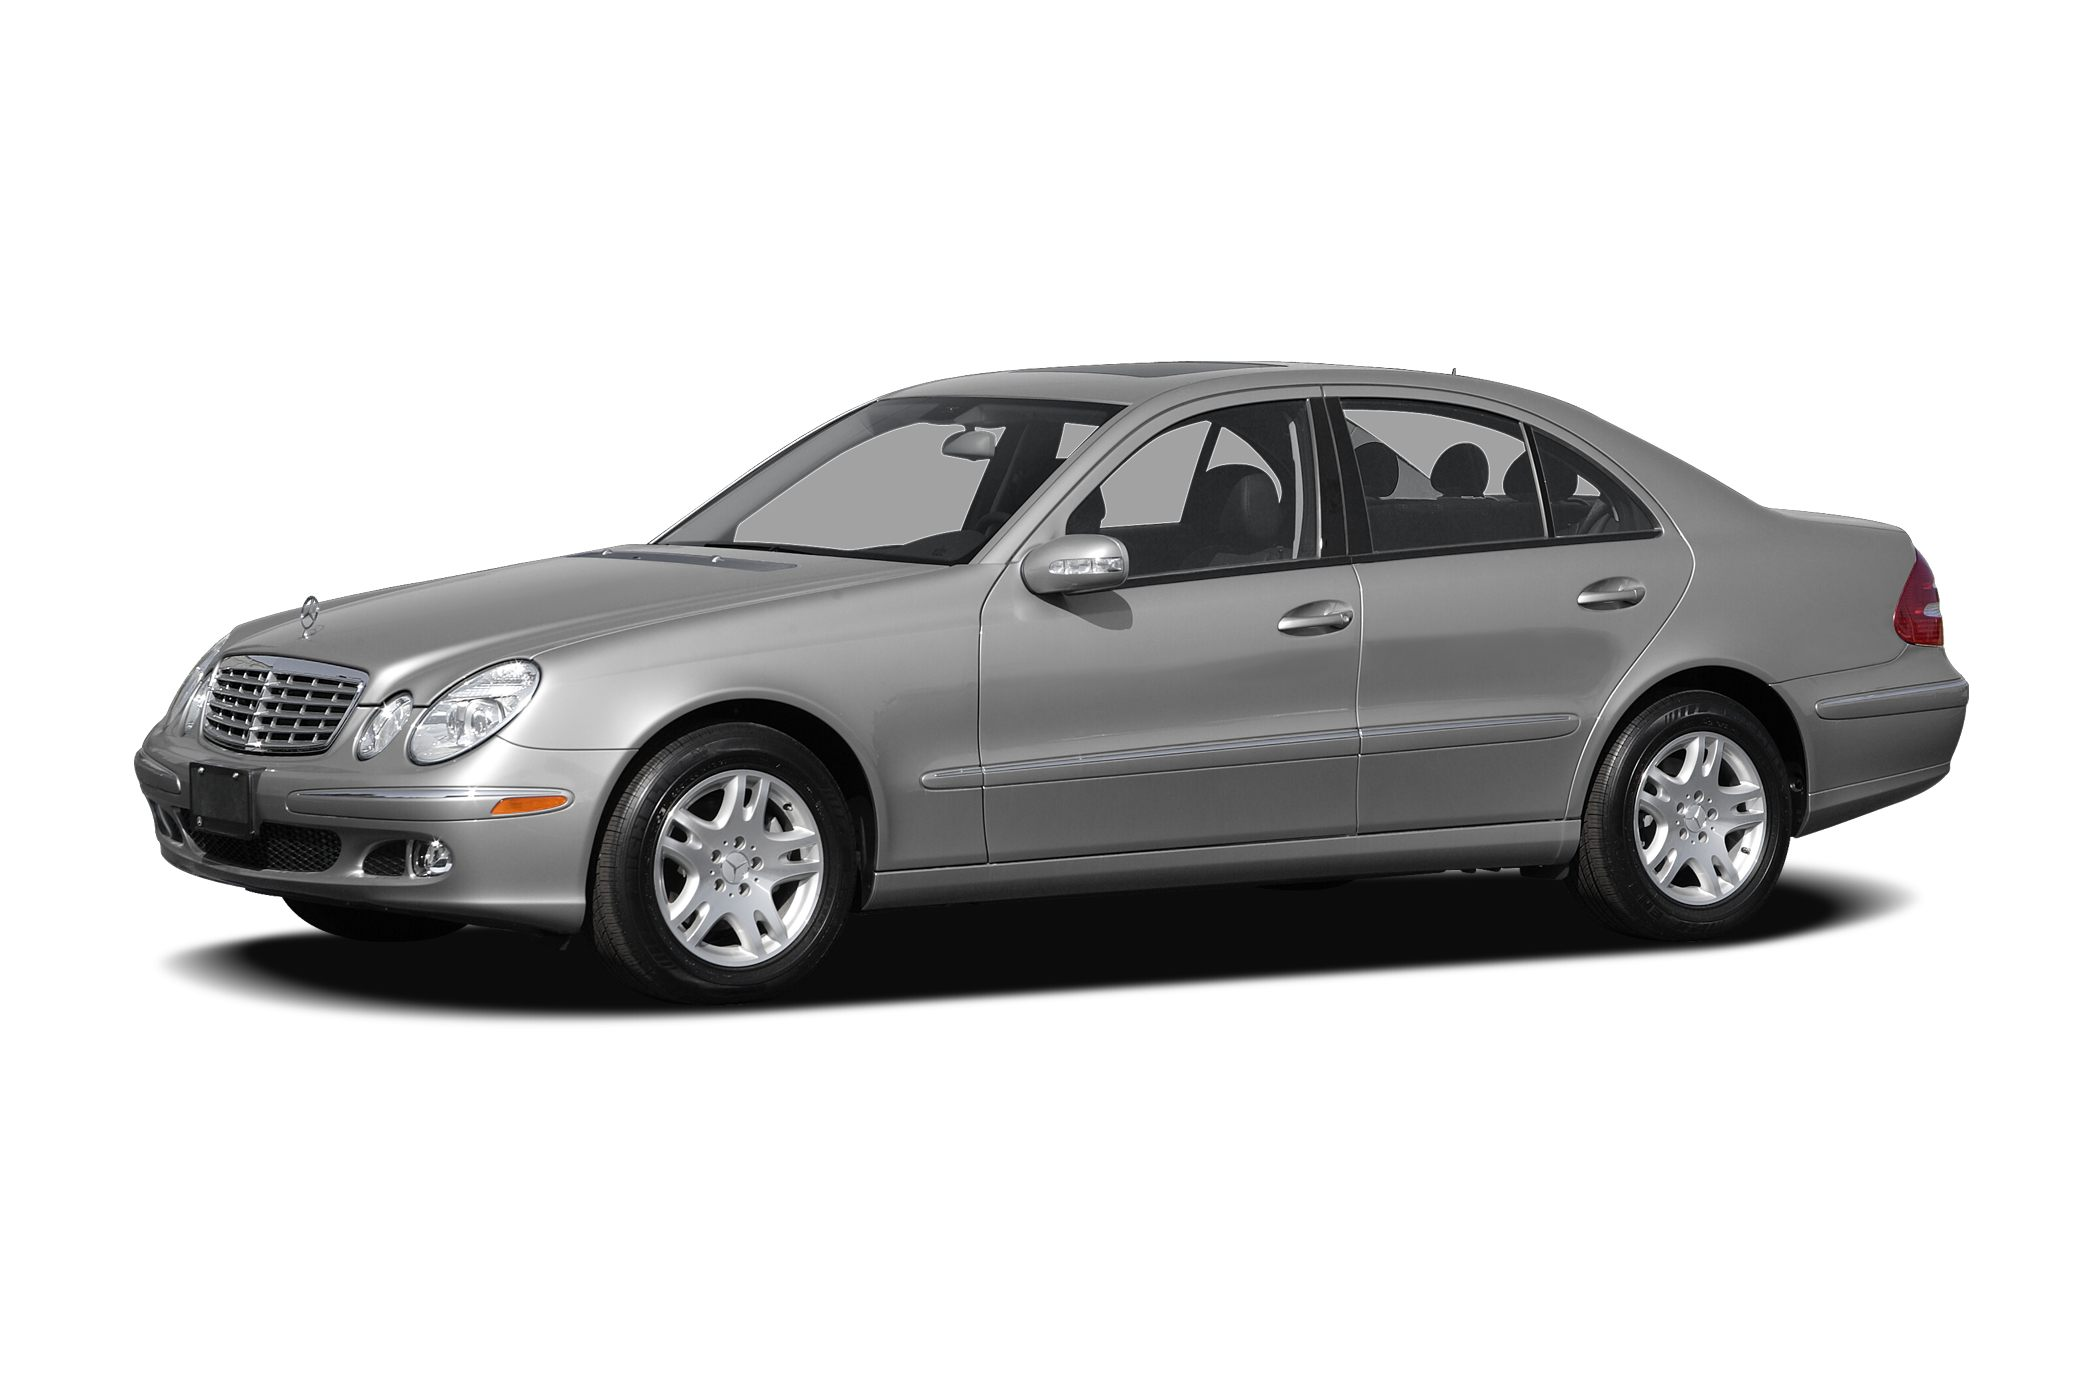 2006 MERCEDES E-Class E350 4MATIC Outfitted with a braking assist dual climate control stability